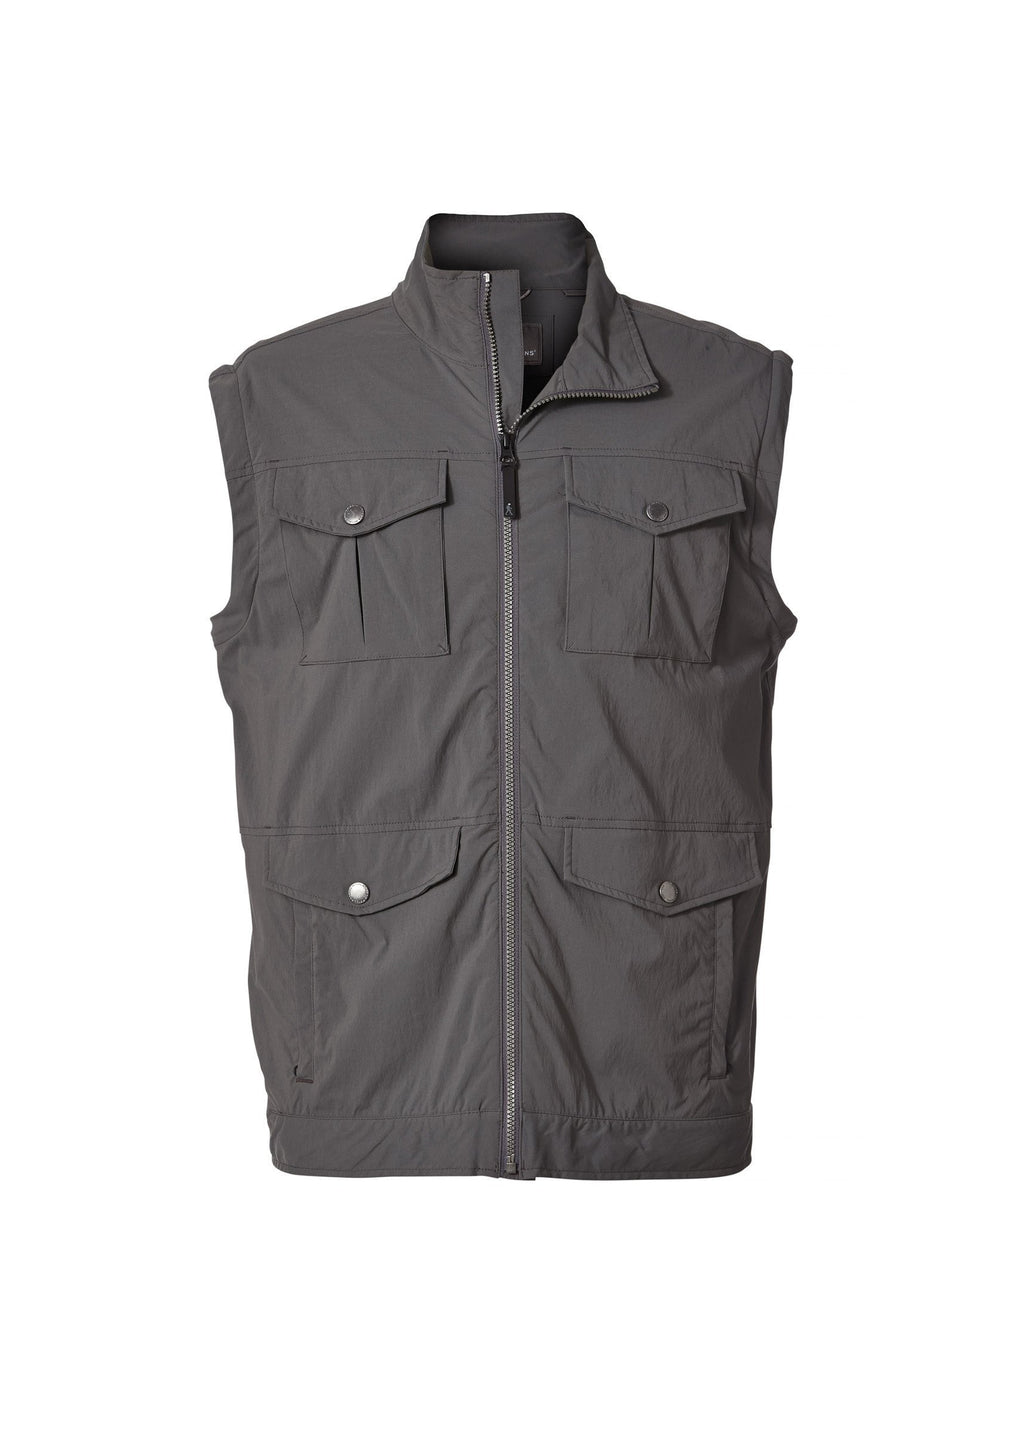 products/S19_48128_TRAVELER_CONVERTIBLE_JACKET_CHARCOAL_018_VEST_1299_601c2126-48b9-4cf3-b508-4cfdd306f29b.jpg